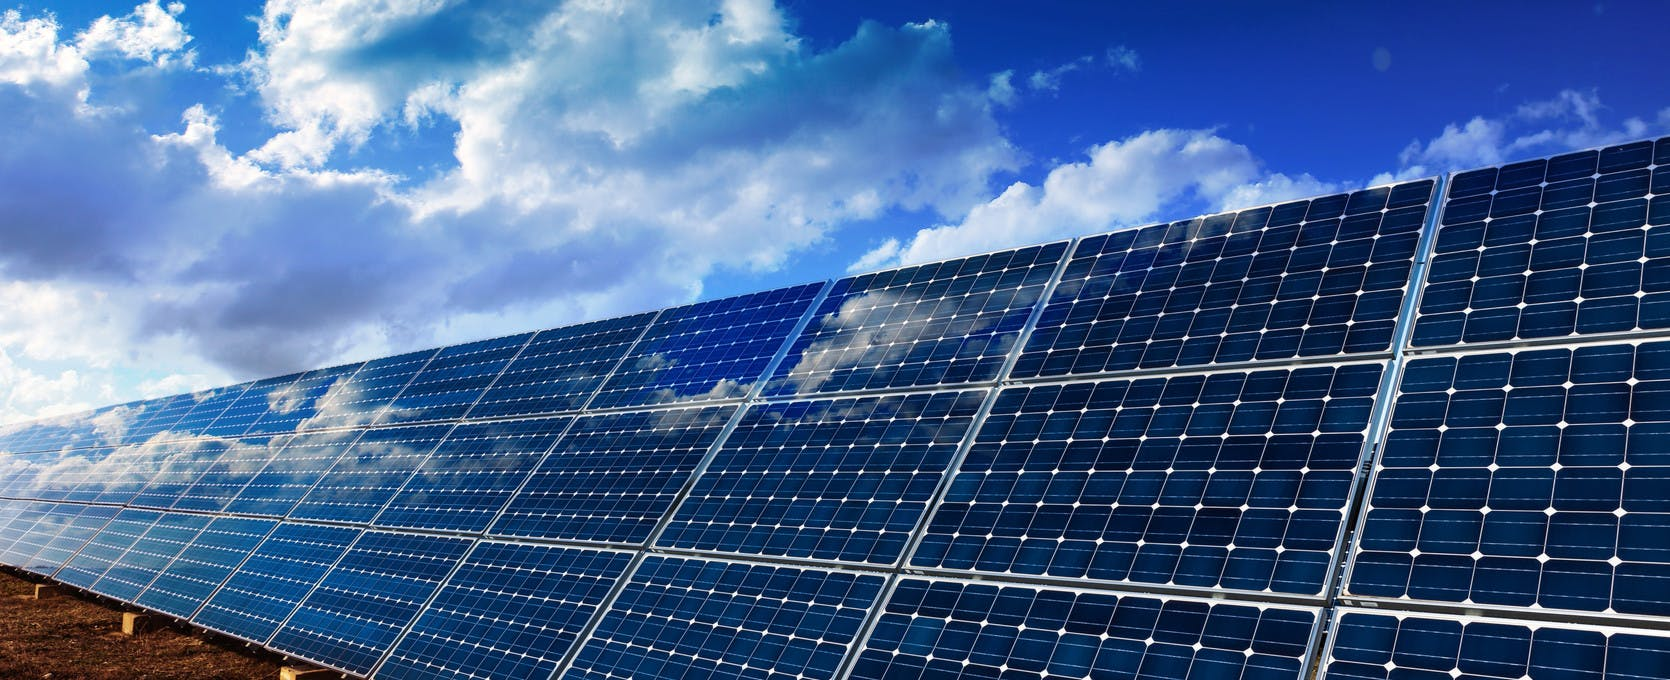 solar panels for energy tax credits